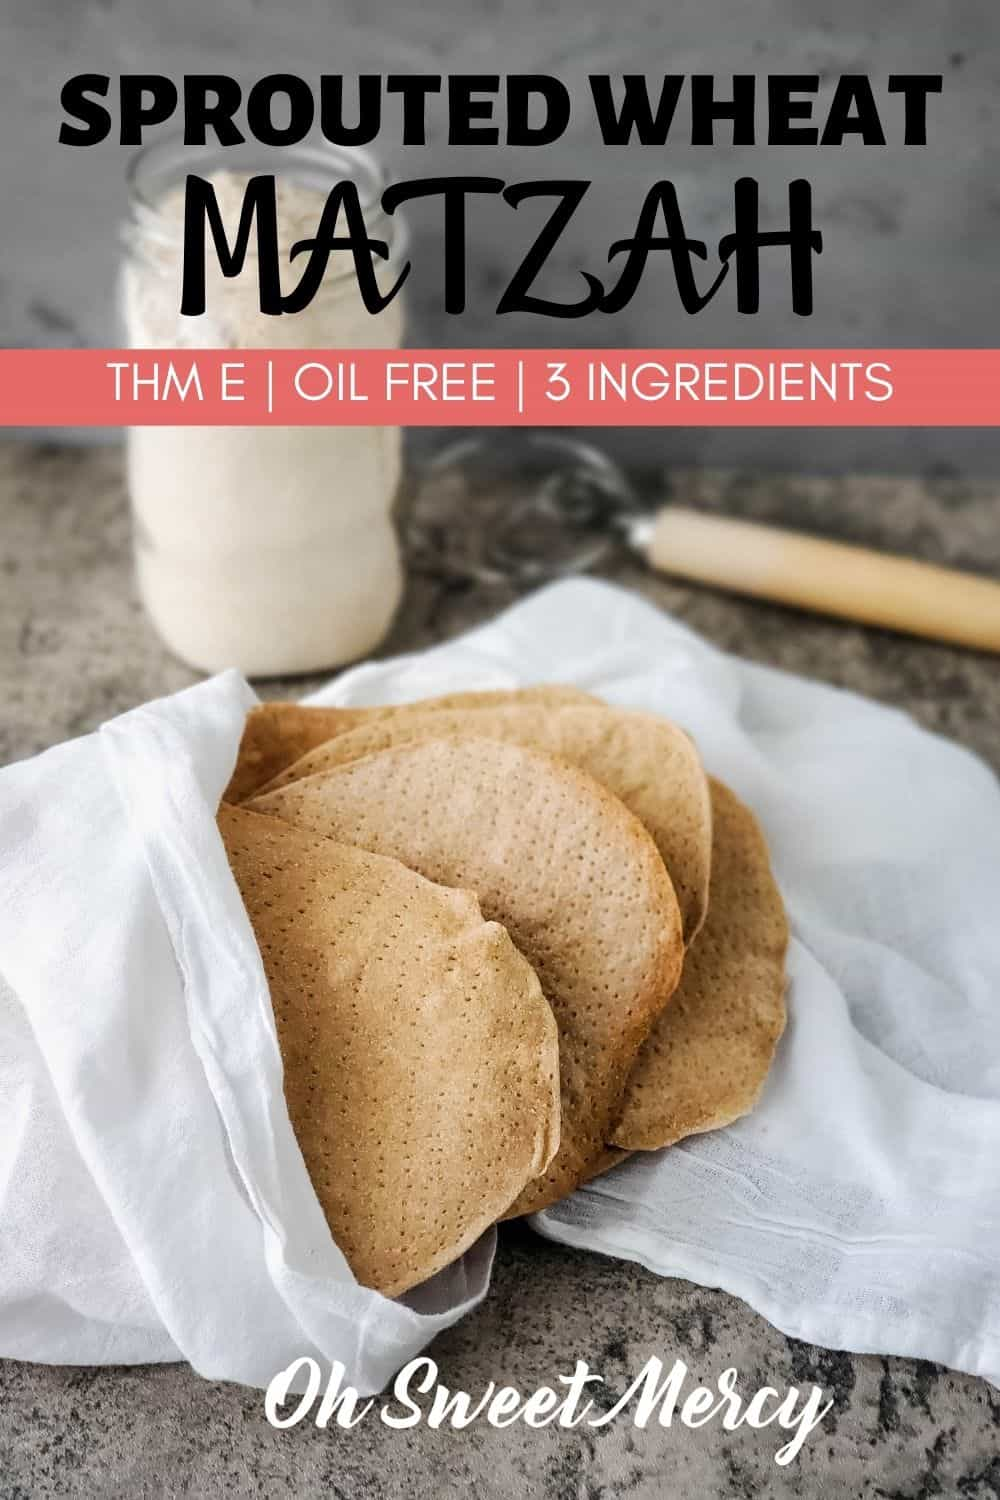 Enjoy on-plan sprouted wheat matzah for your THM Passover meal this year! Just 3 ingredients and no oil or added fats. #thm #sproutedwheat #homemadematzah #matzah #matzo #fatfree @ohsweetmercy